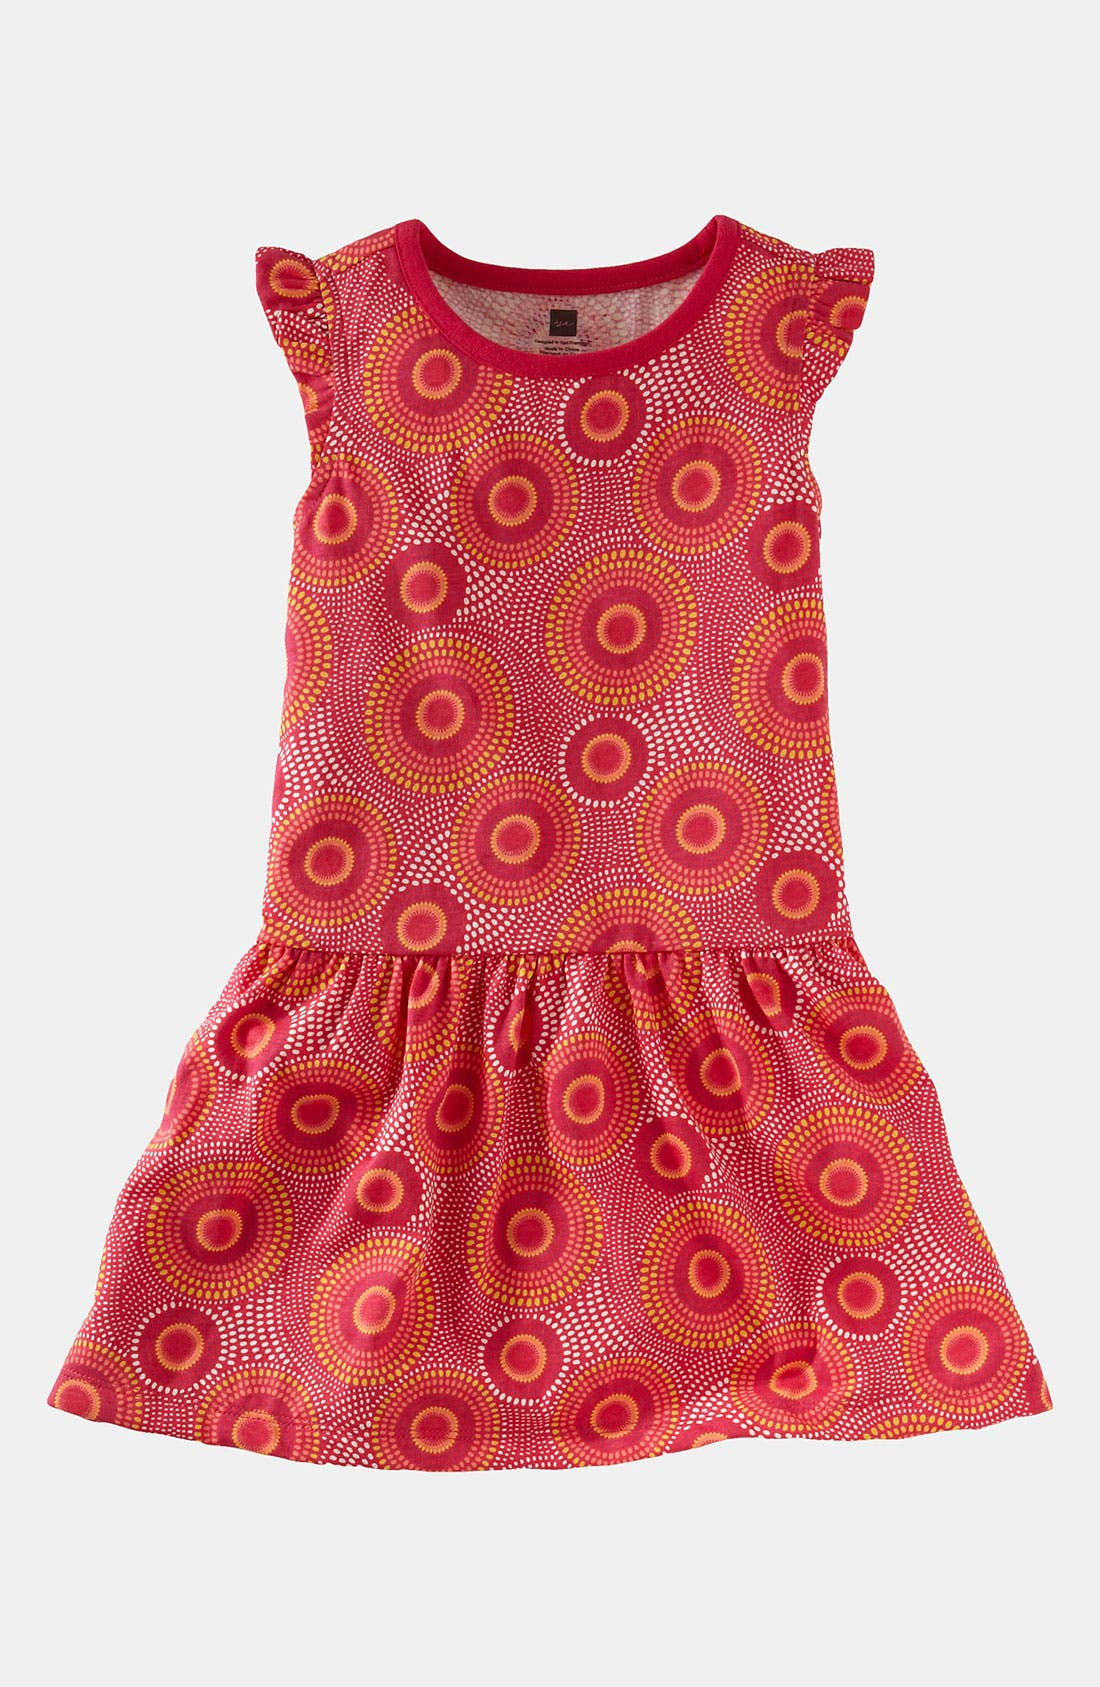 Alternate Image 1 Selected - Tea Collection 'Elm' Flutter Dress (Little Girls & Big Girls)